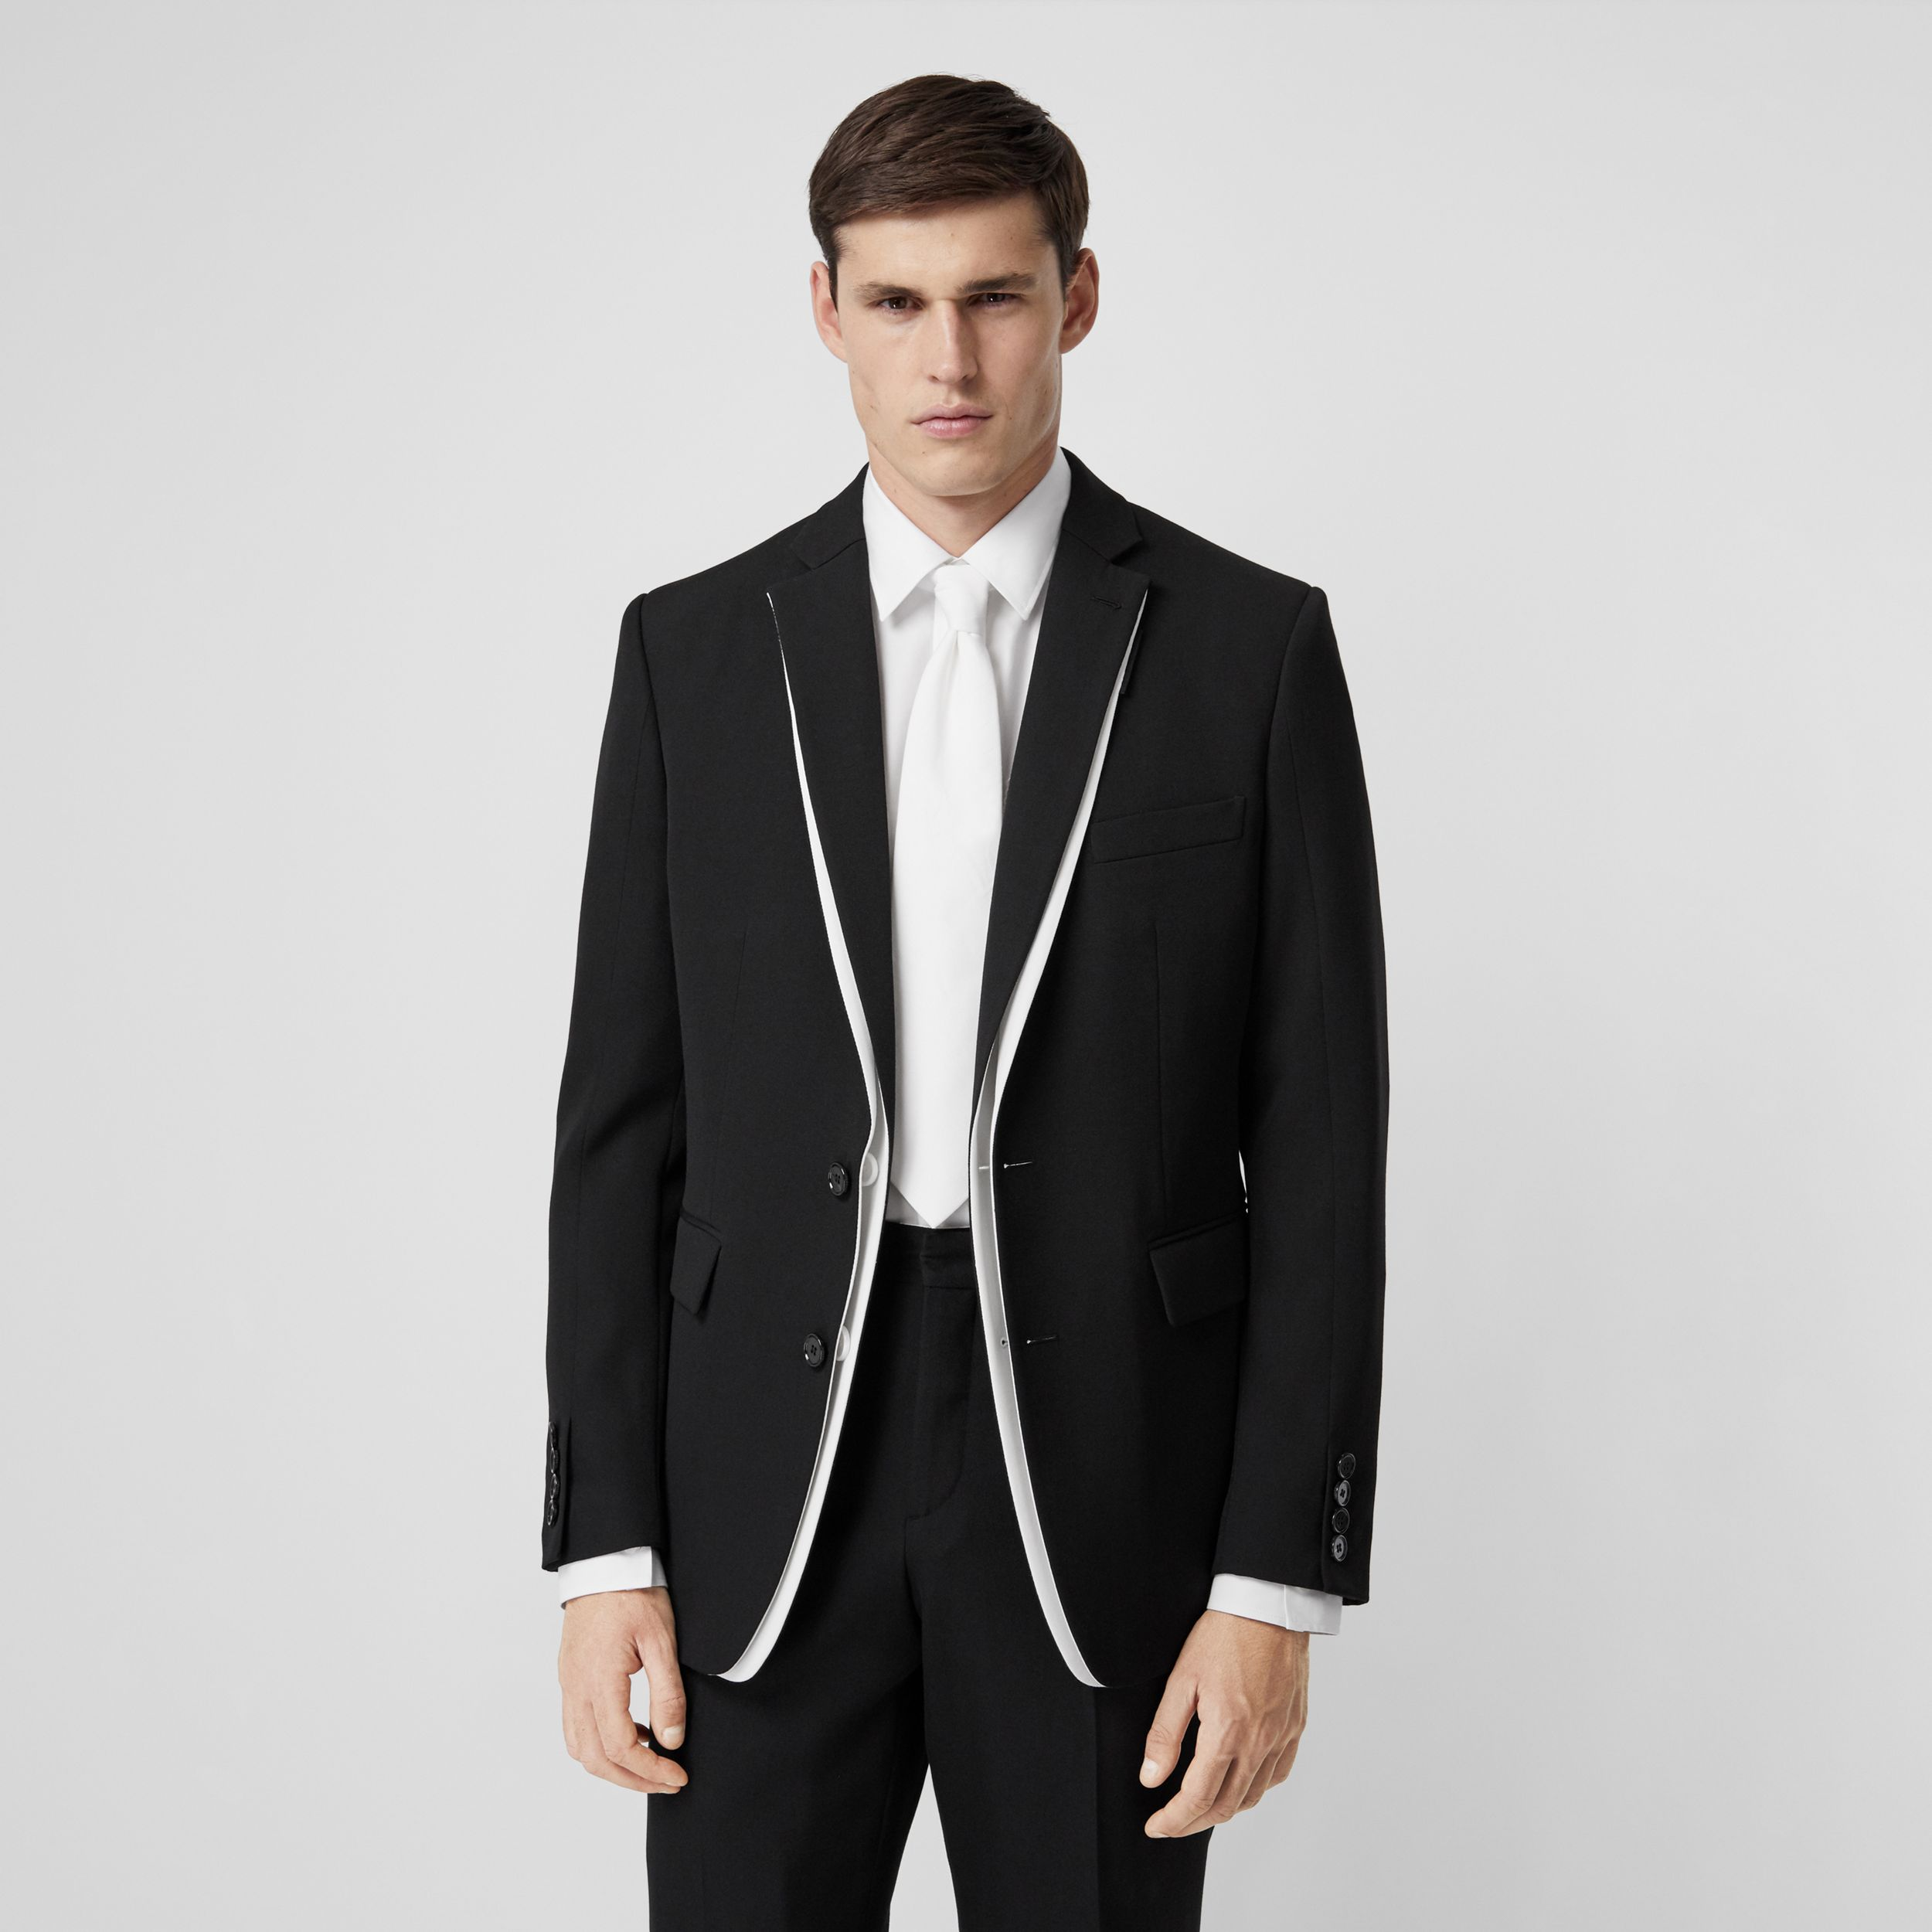 English Fit Double-front Detail Wool Tailored Jacket in Black - Men | Burberry - 1